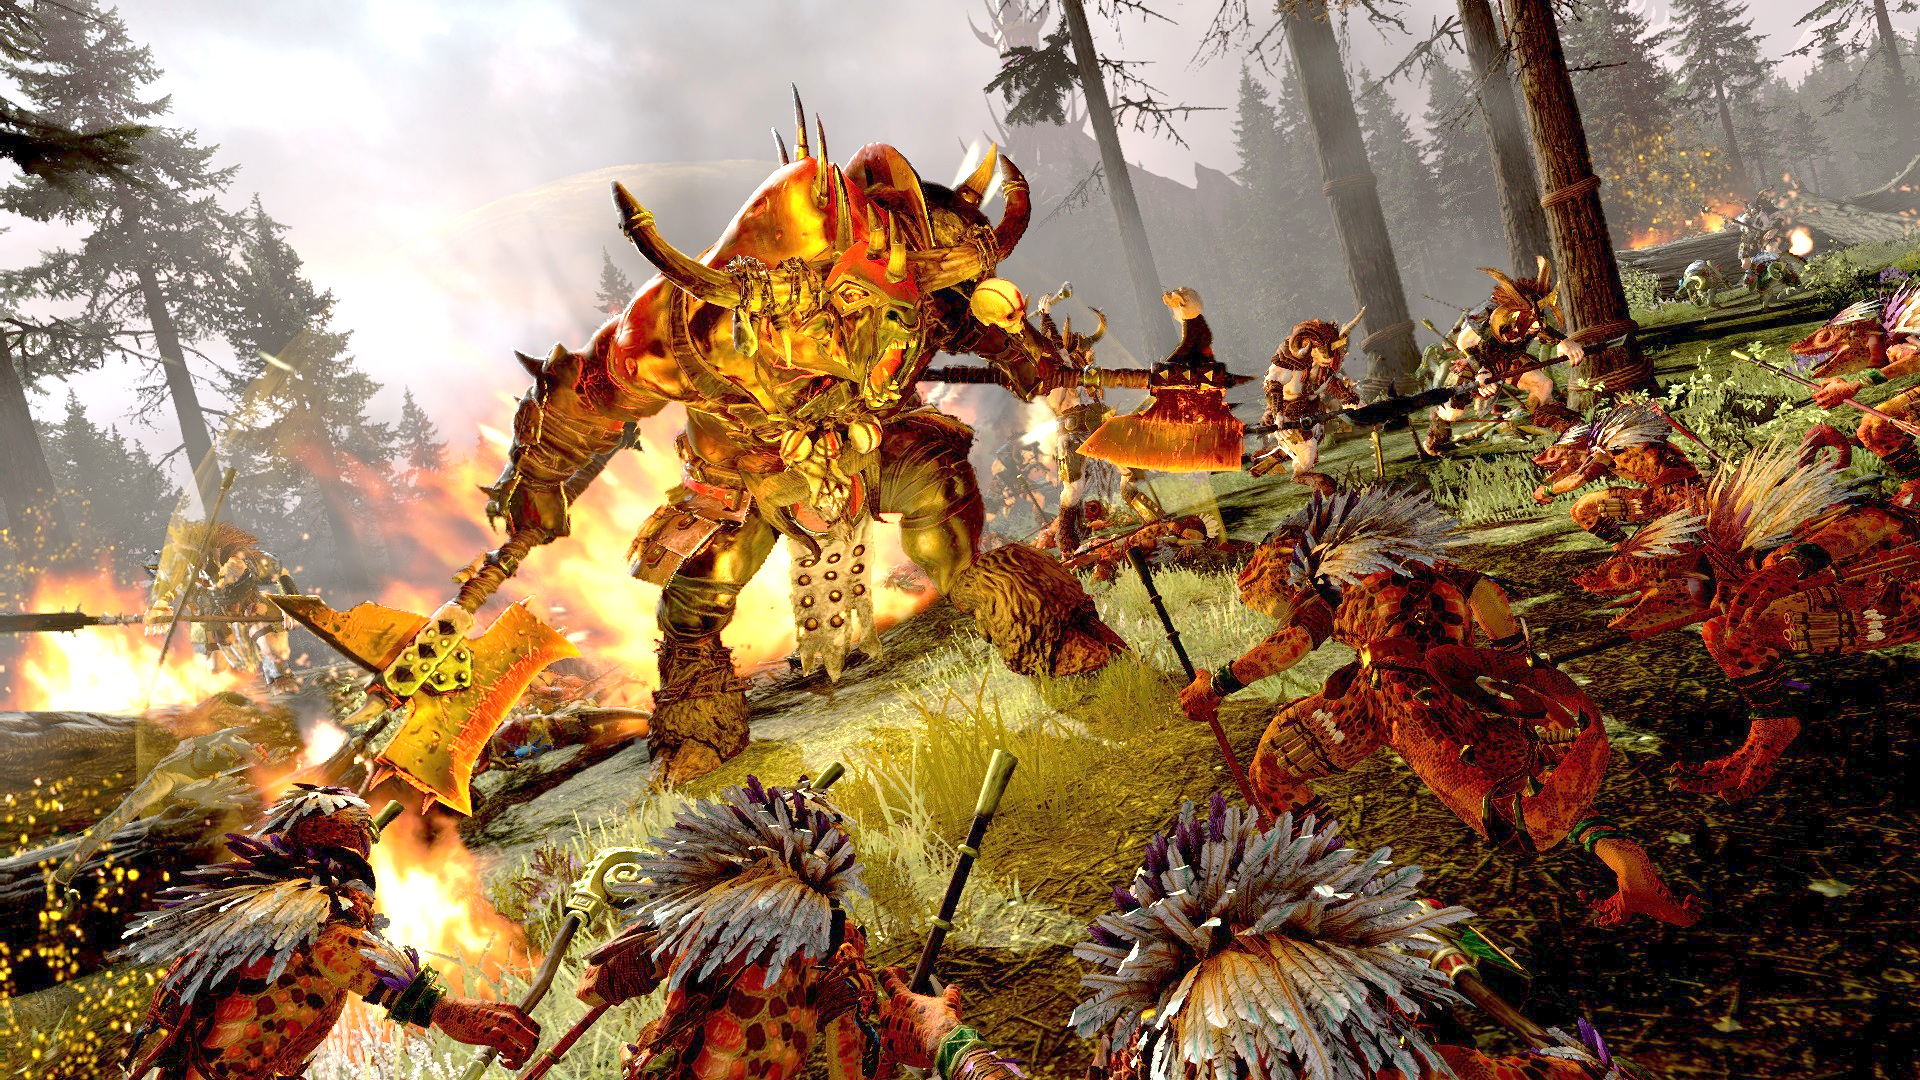 The final Total Warhammer 2 DLC means we can all stop dunking on the Beastmen